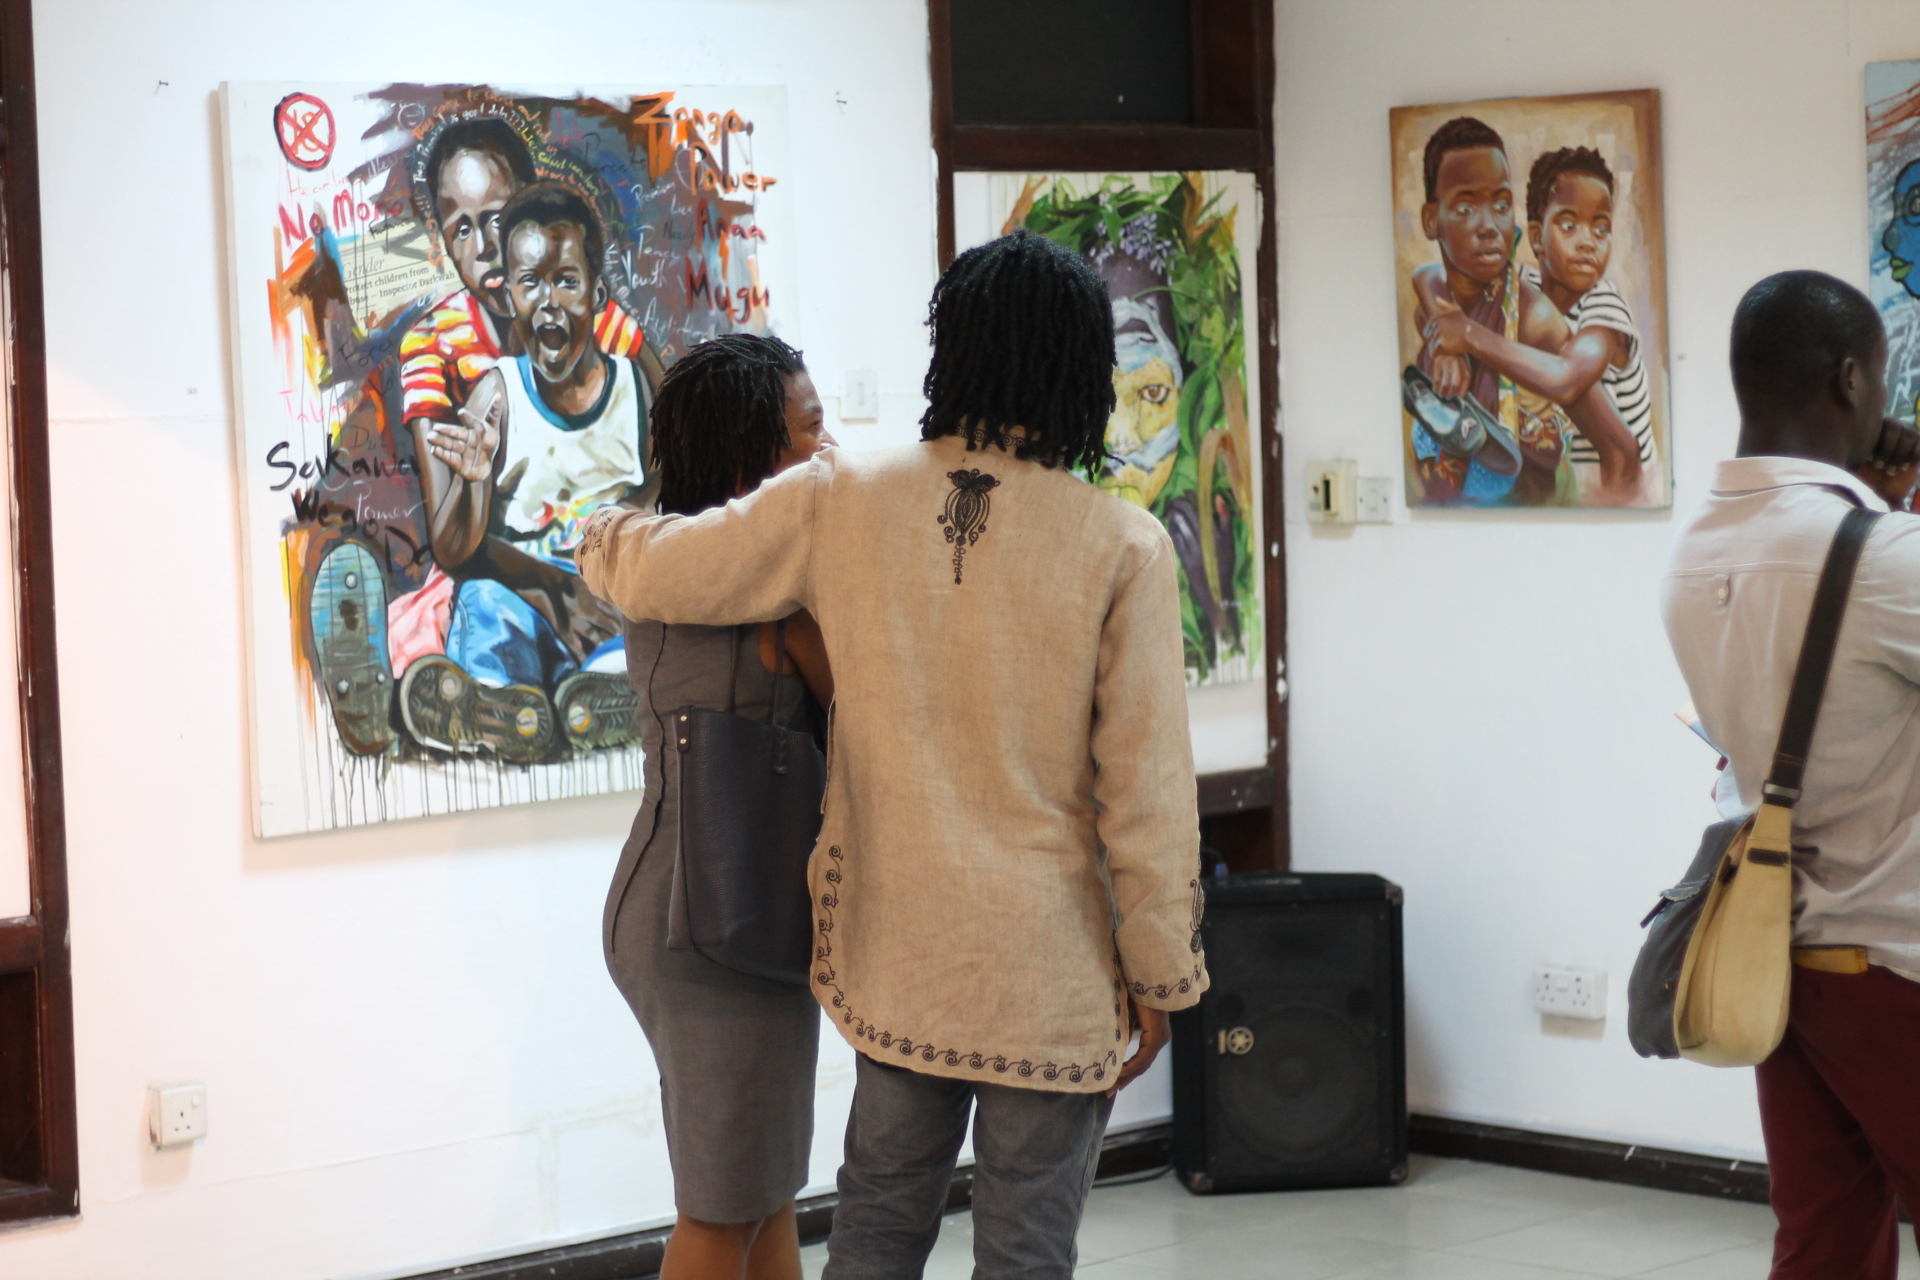 One of Ghana's best sculptor Kwame Akoto and his friend